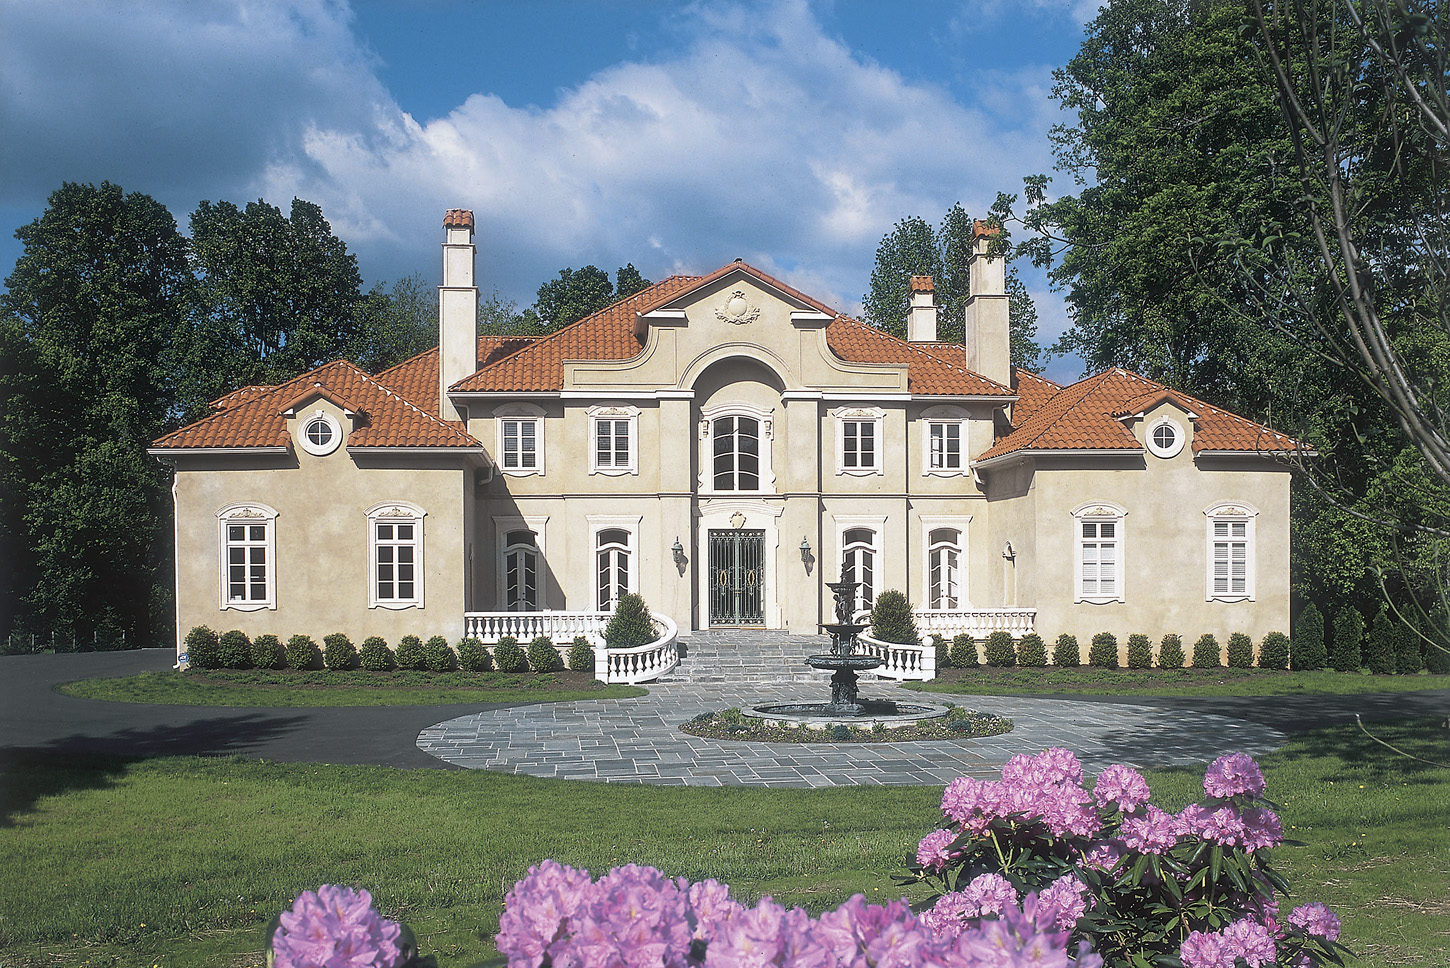 Entrance of mansion in Potomac, Maryland with fountain and circular driveway